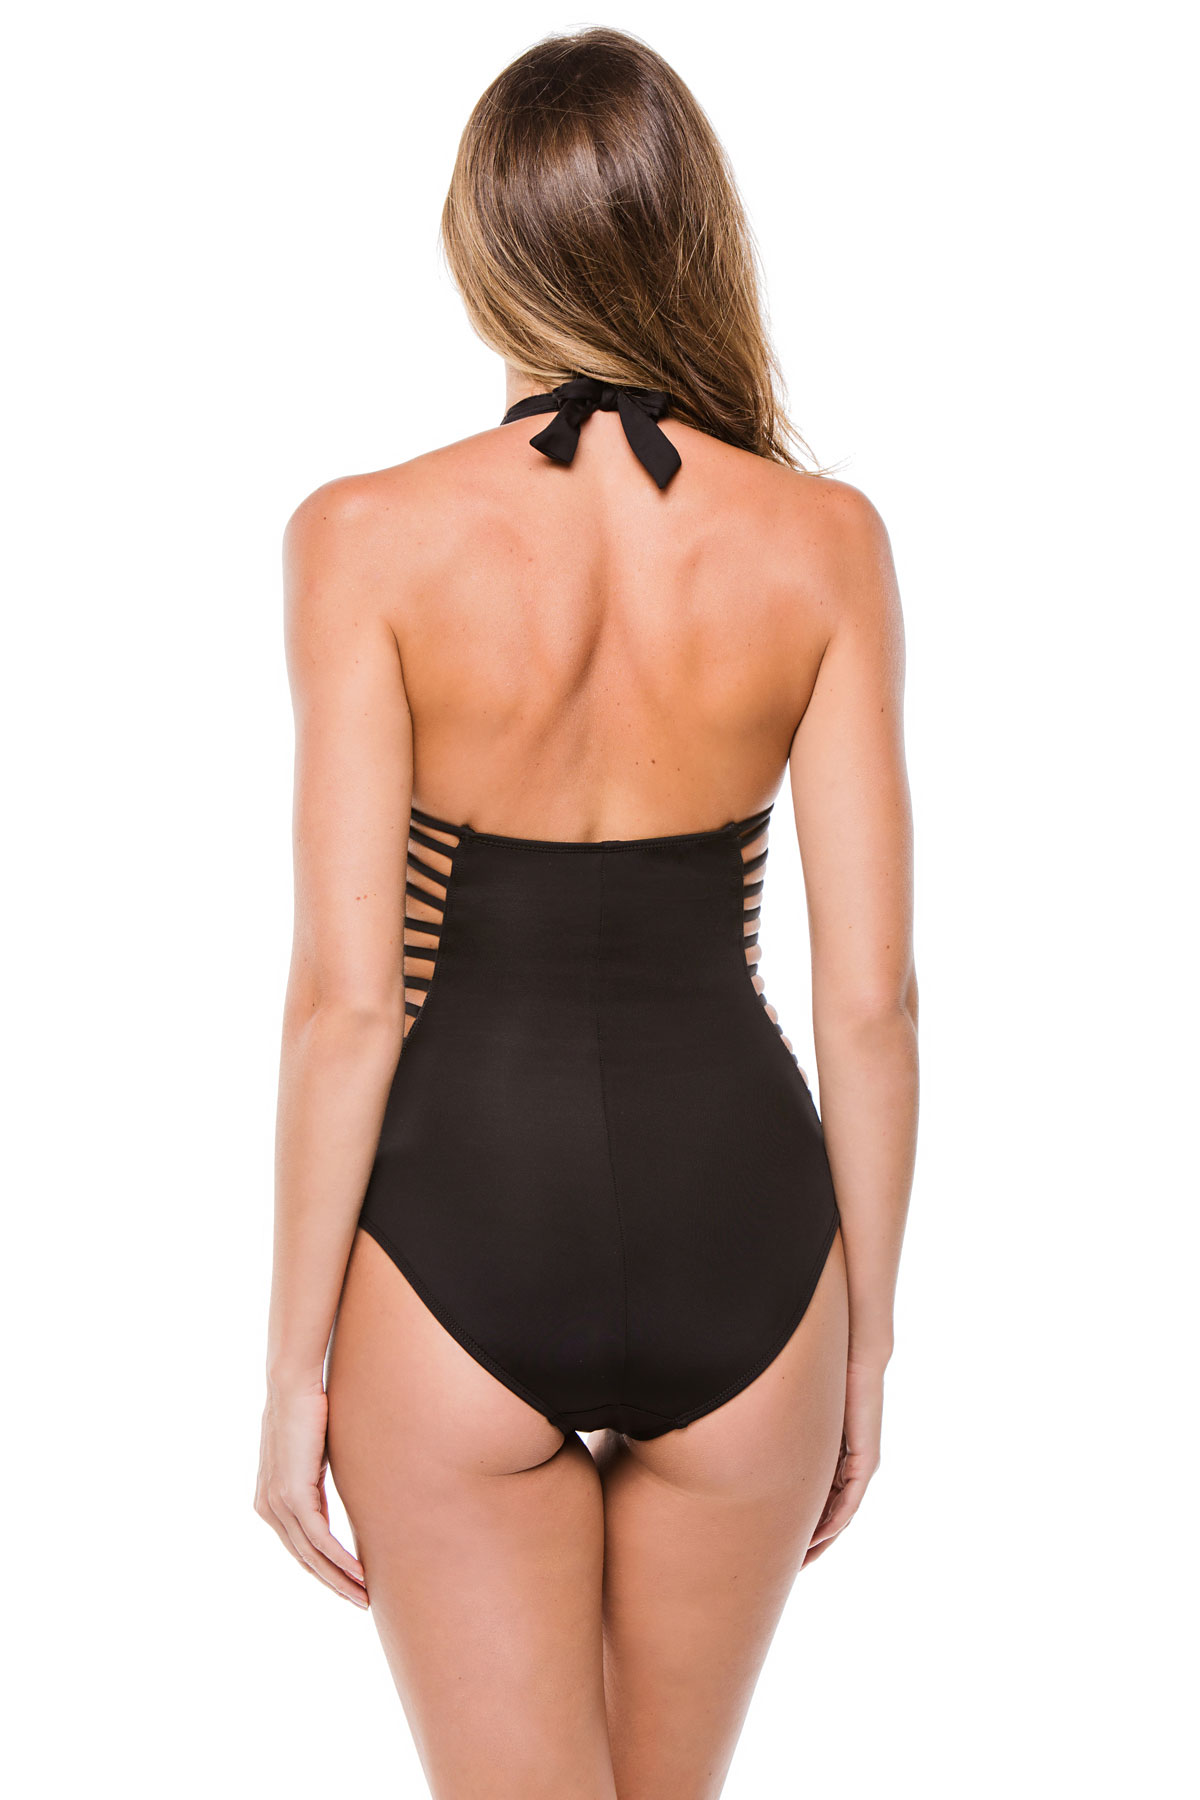 Strappy Cutout Plunge Halter One Piece Swimsuit - Black 2